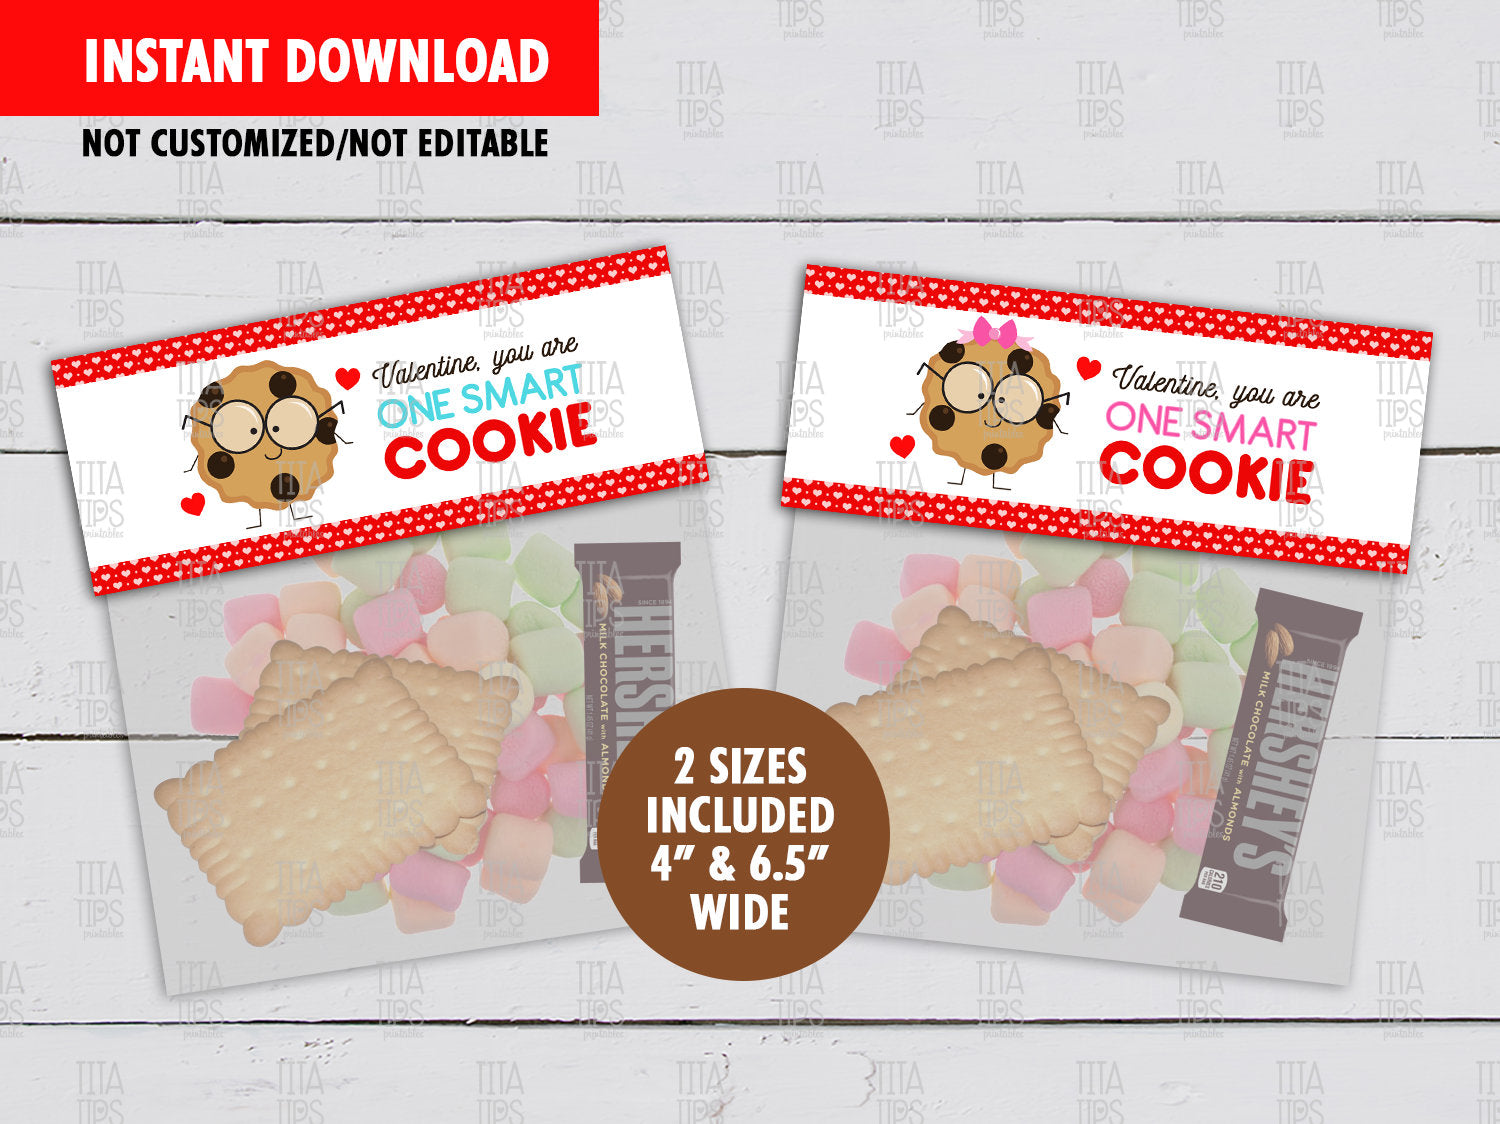 You are a Smart Cookie Valentine's Day Favor Bag Label, Printable DIY Treat Bag Toppers, Digital File, Instant Download - TitaTipsPrintables